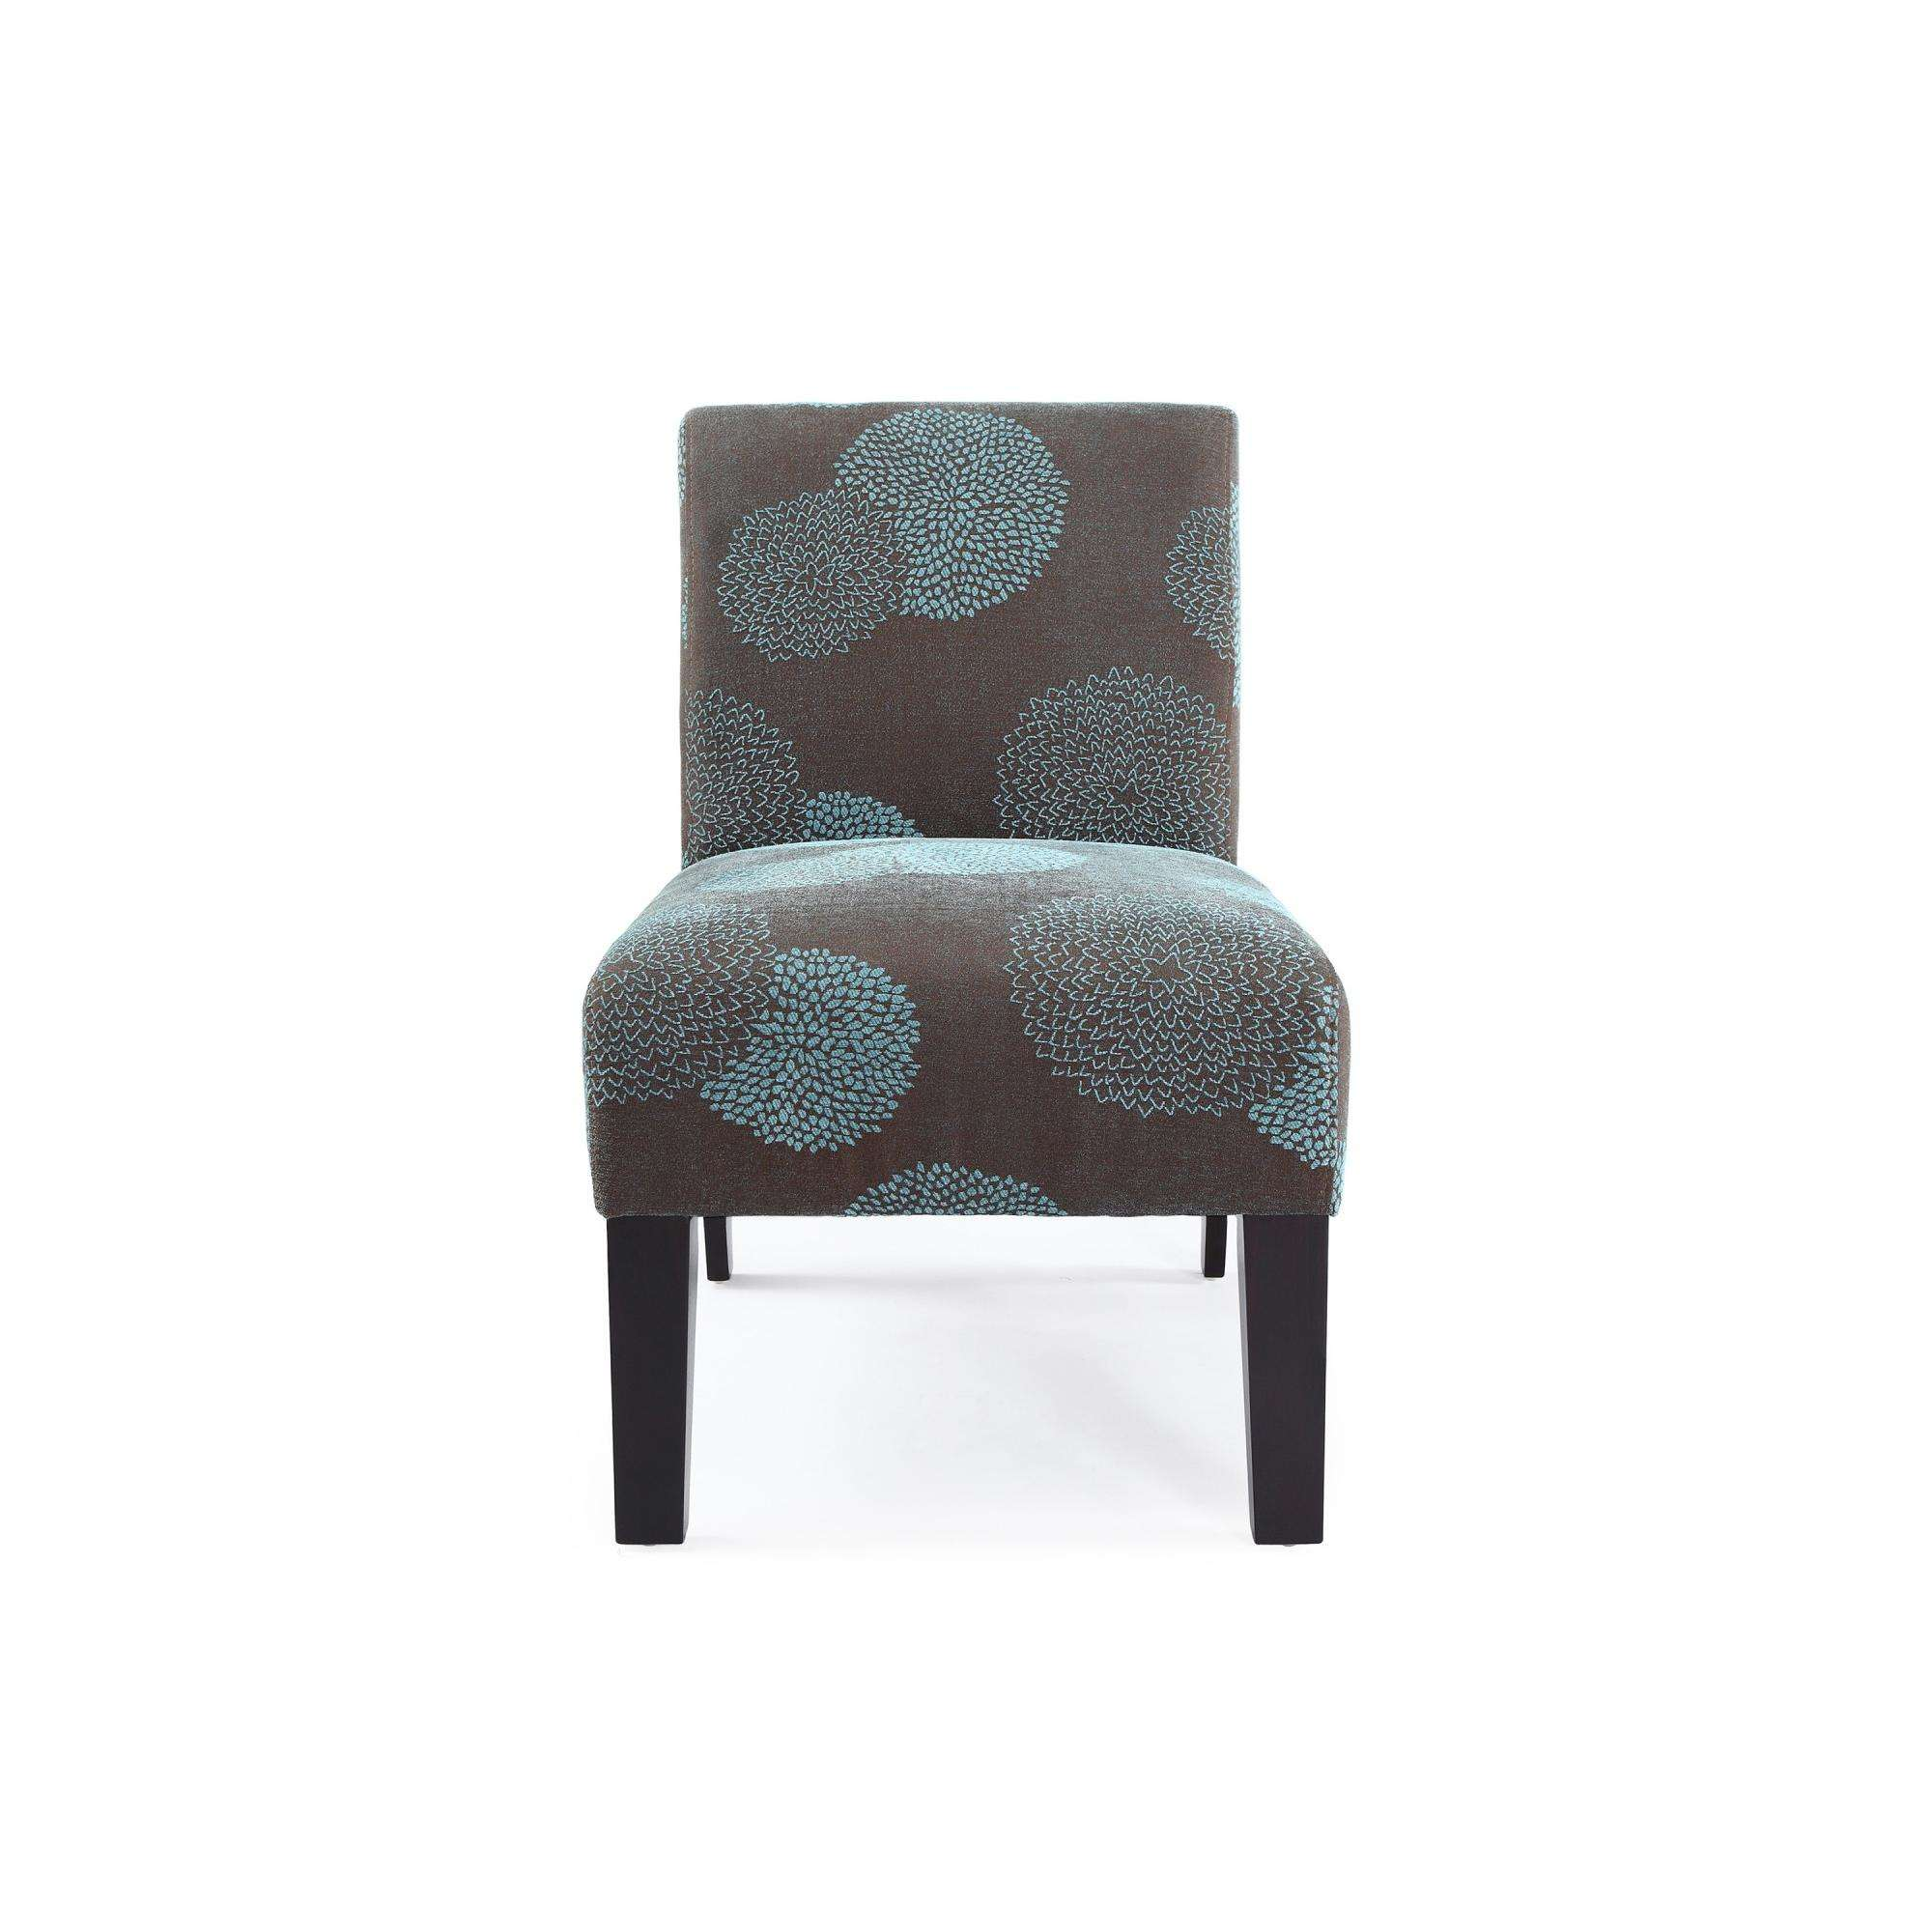 colorful accent chair rental chairs and tables dhi sunflower deco upholstered multiple colors walmart com